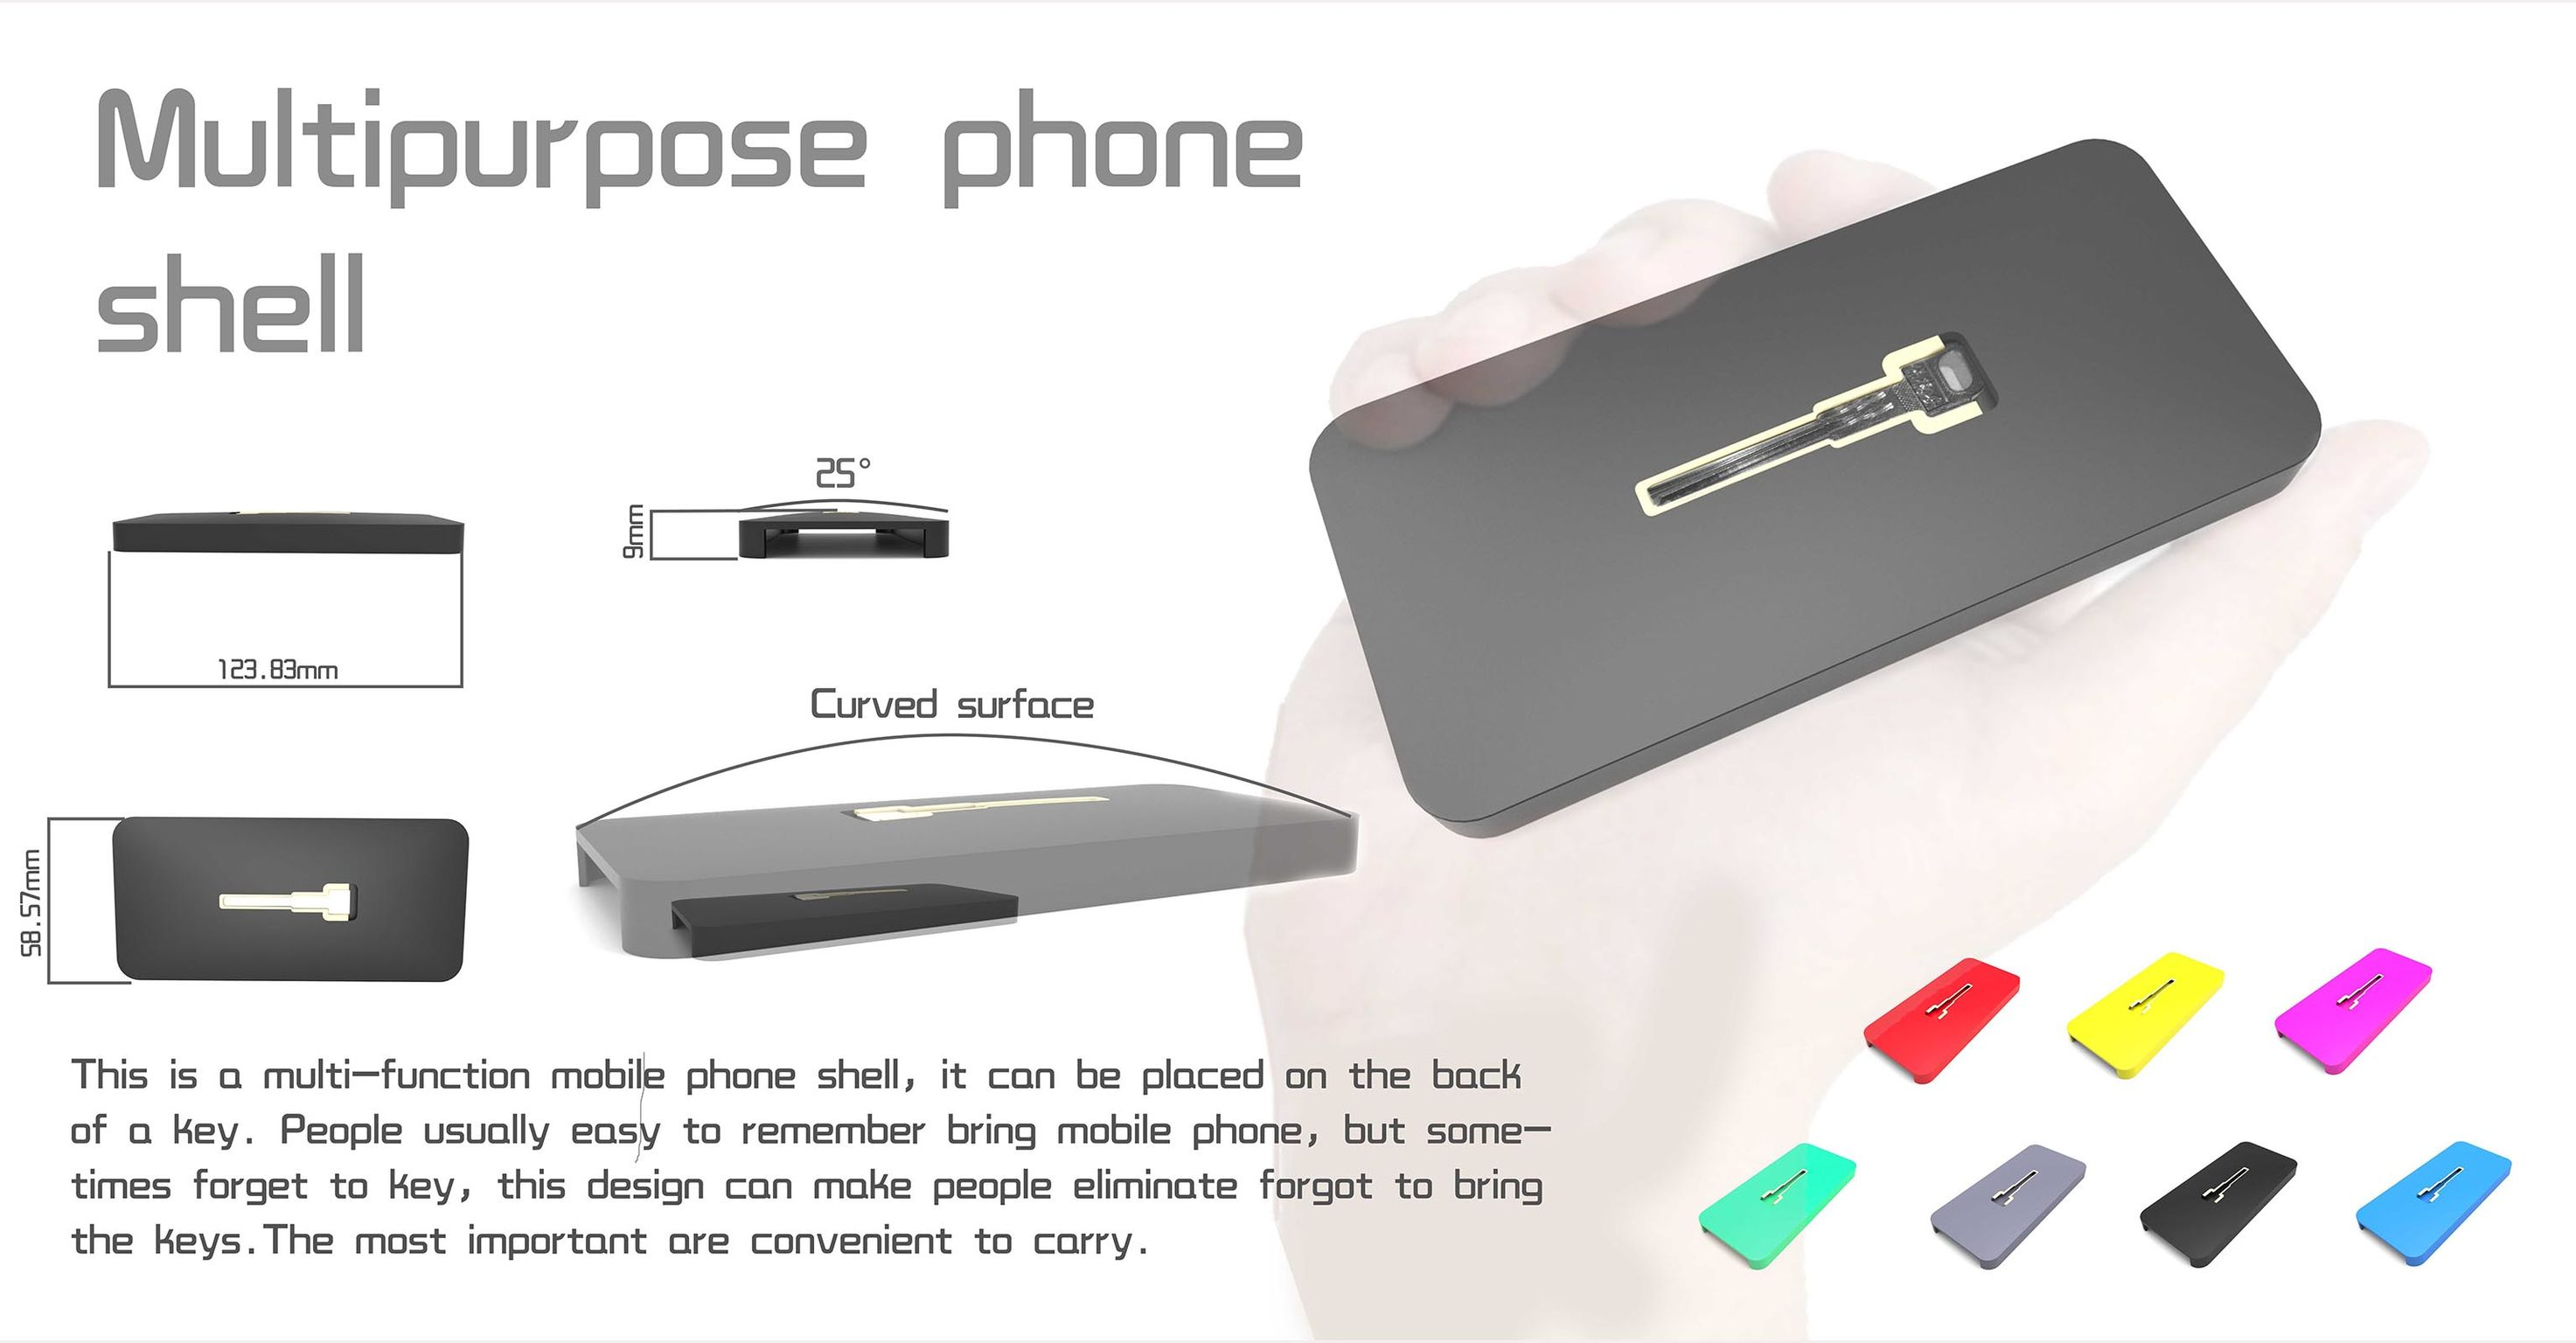 Men's Glasses Mini Mirror Contact Lens Travel Kit Easy Carry Case Storage Holder Container Box Commodities Are Available Without Restriction